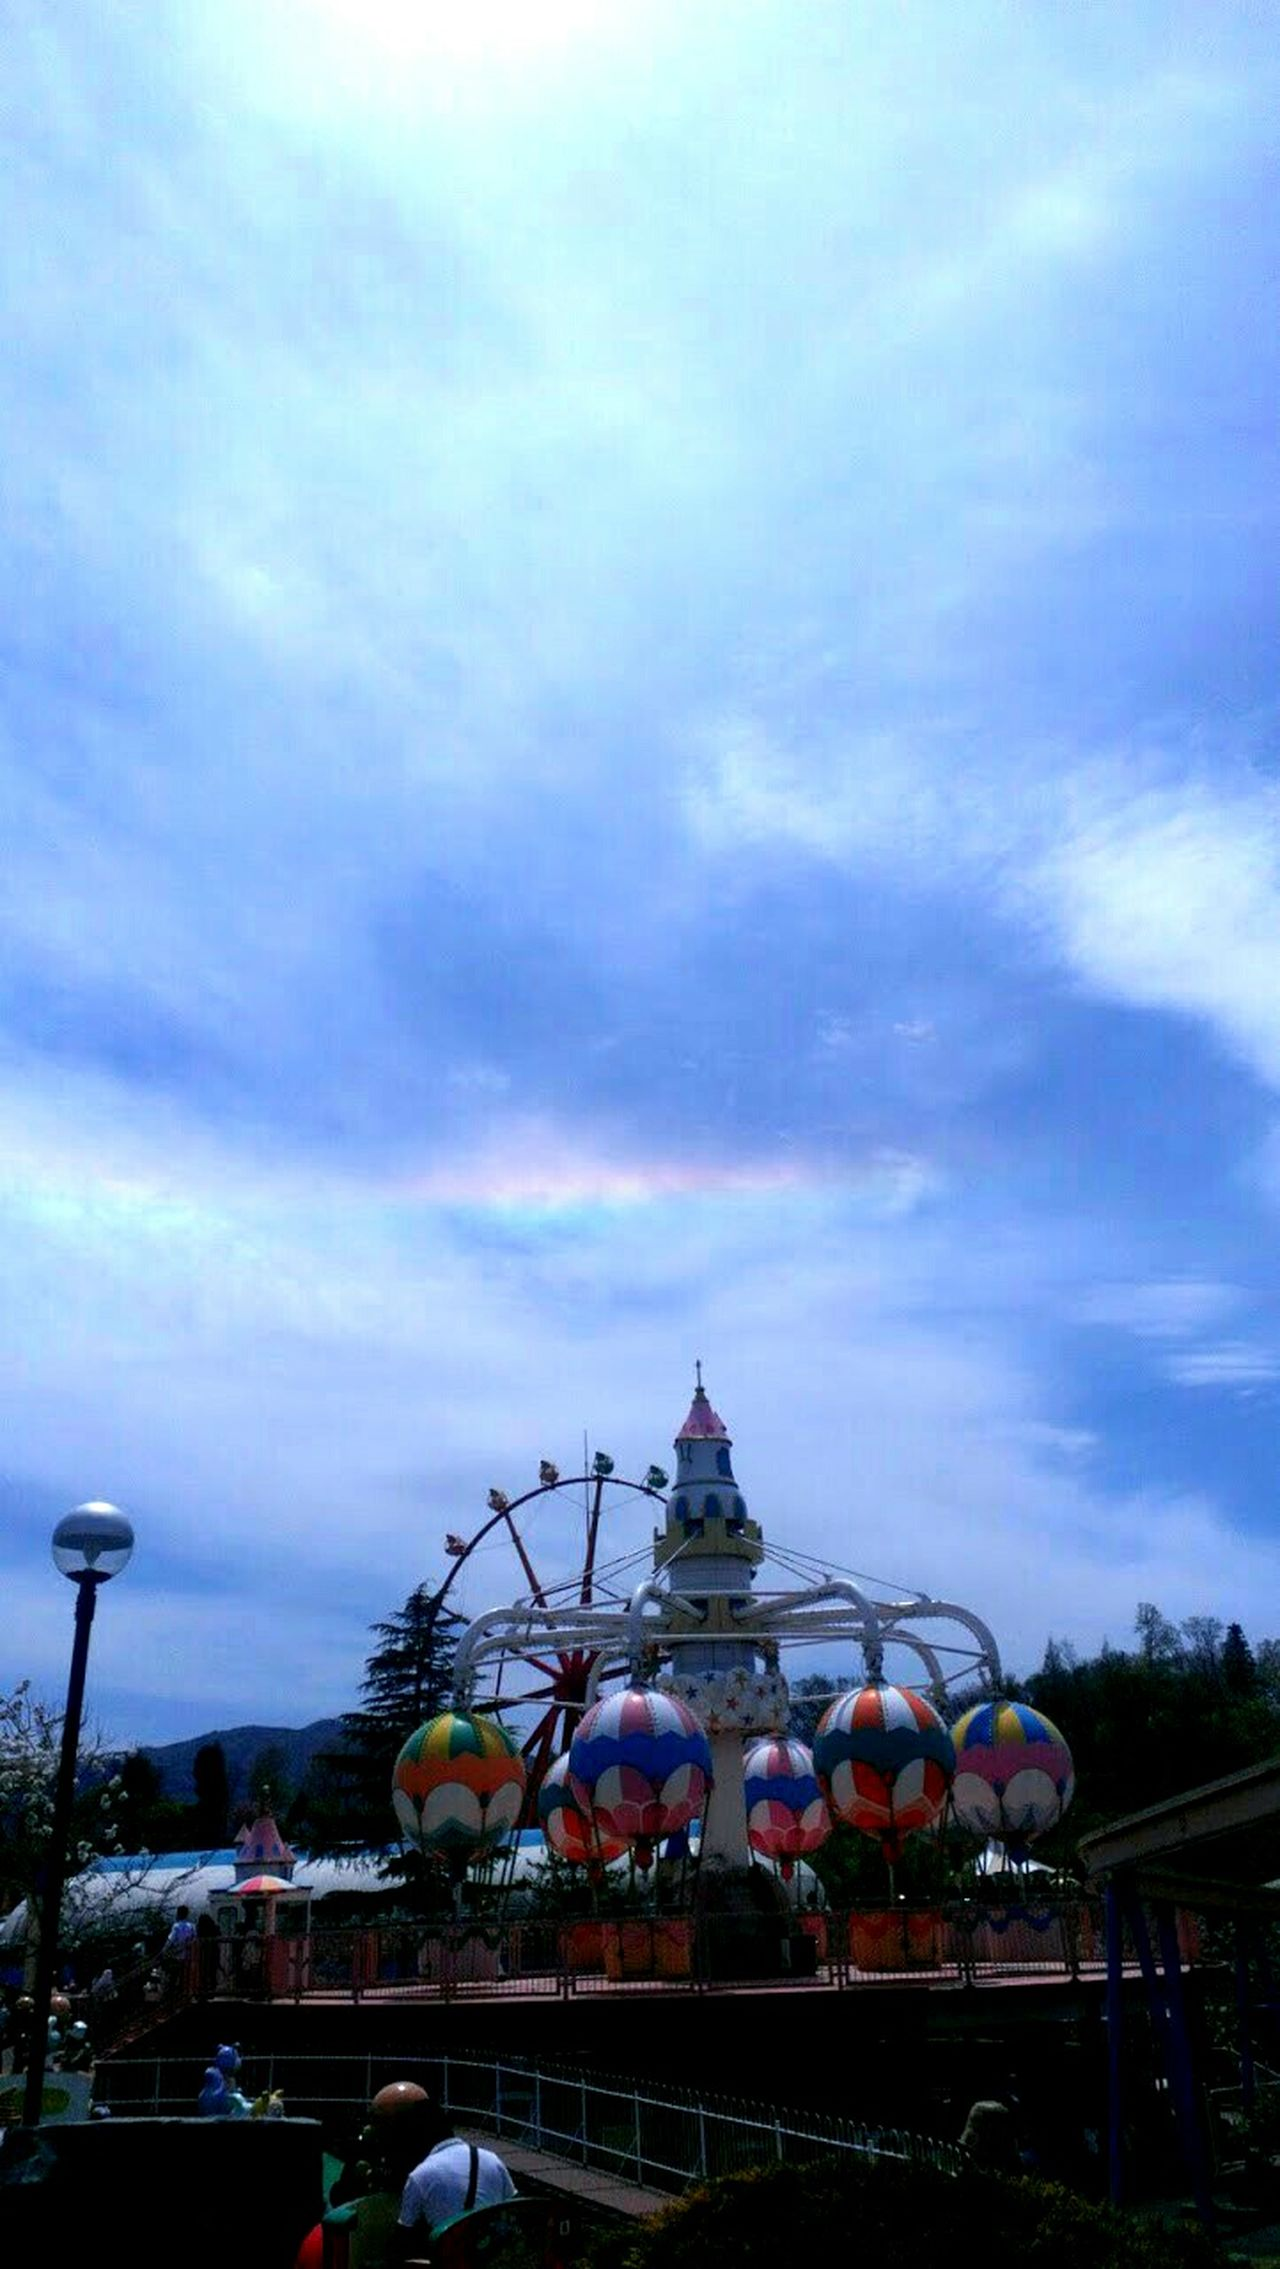 環水平アーク 虹 Rainbow 環水平アーク 蒜山高原センター Happy Circumhorizn Arc 遊園地 Amusement Parks Amusementpark Rainbows